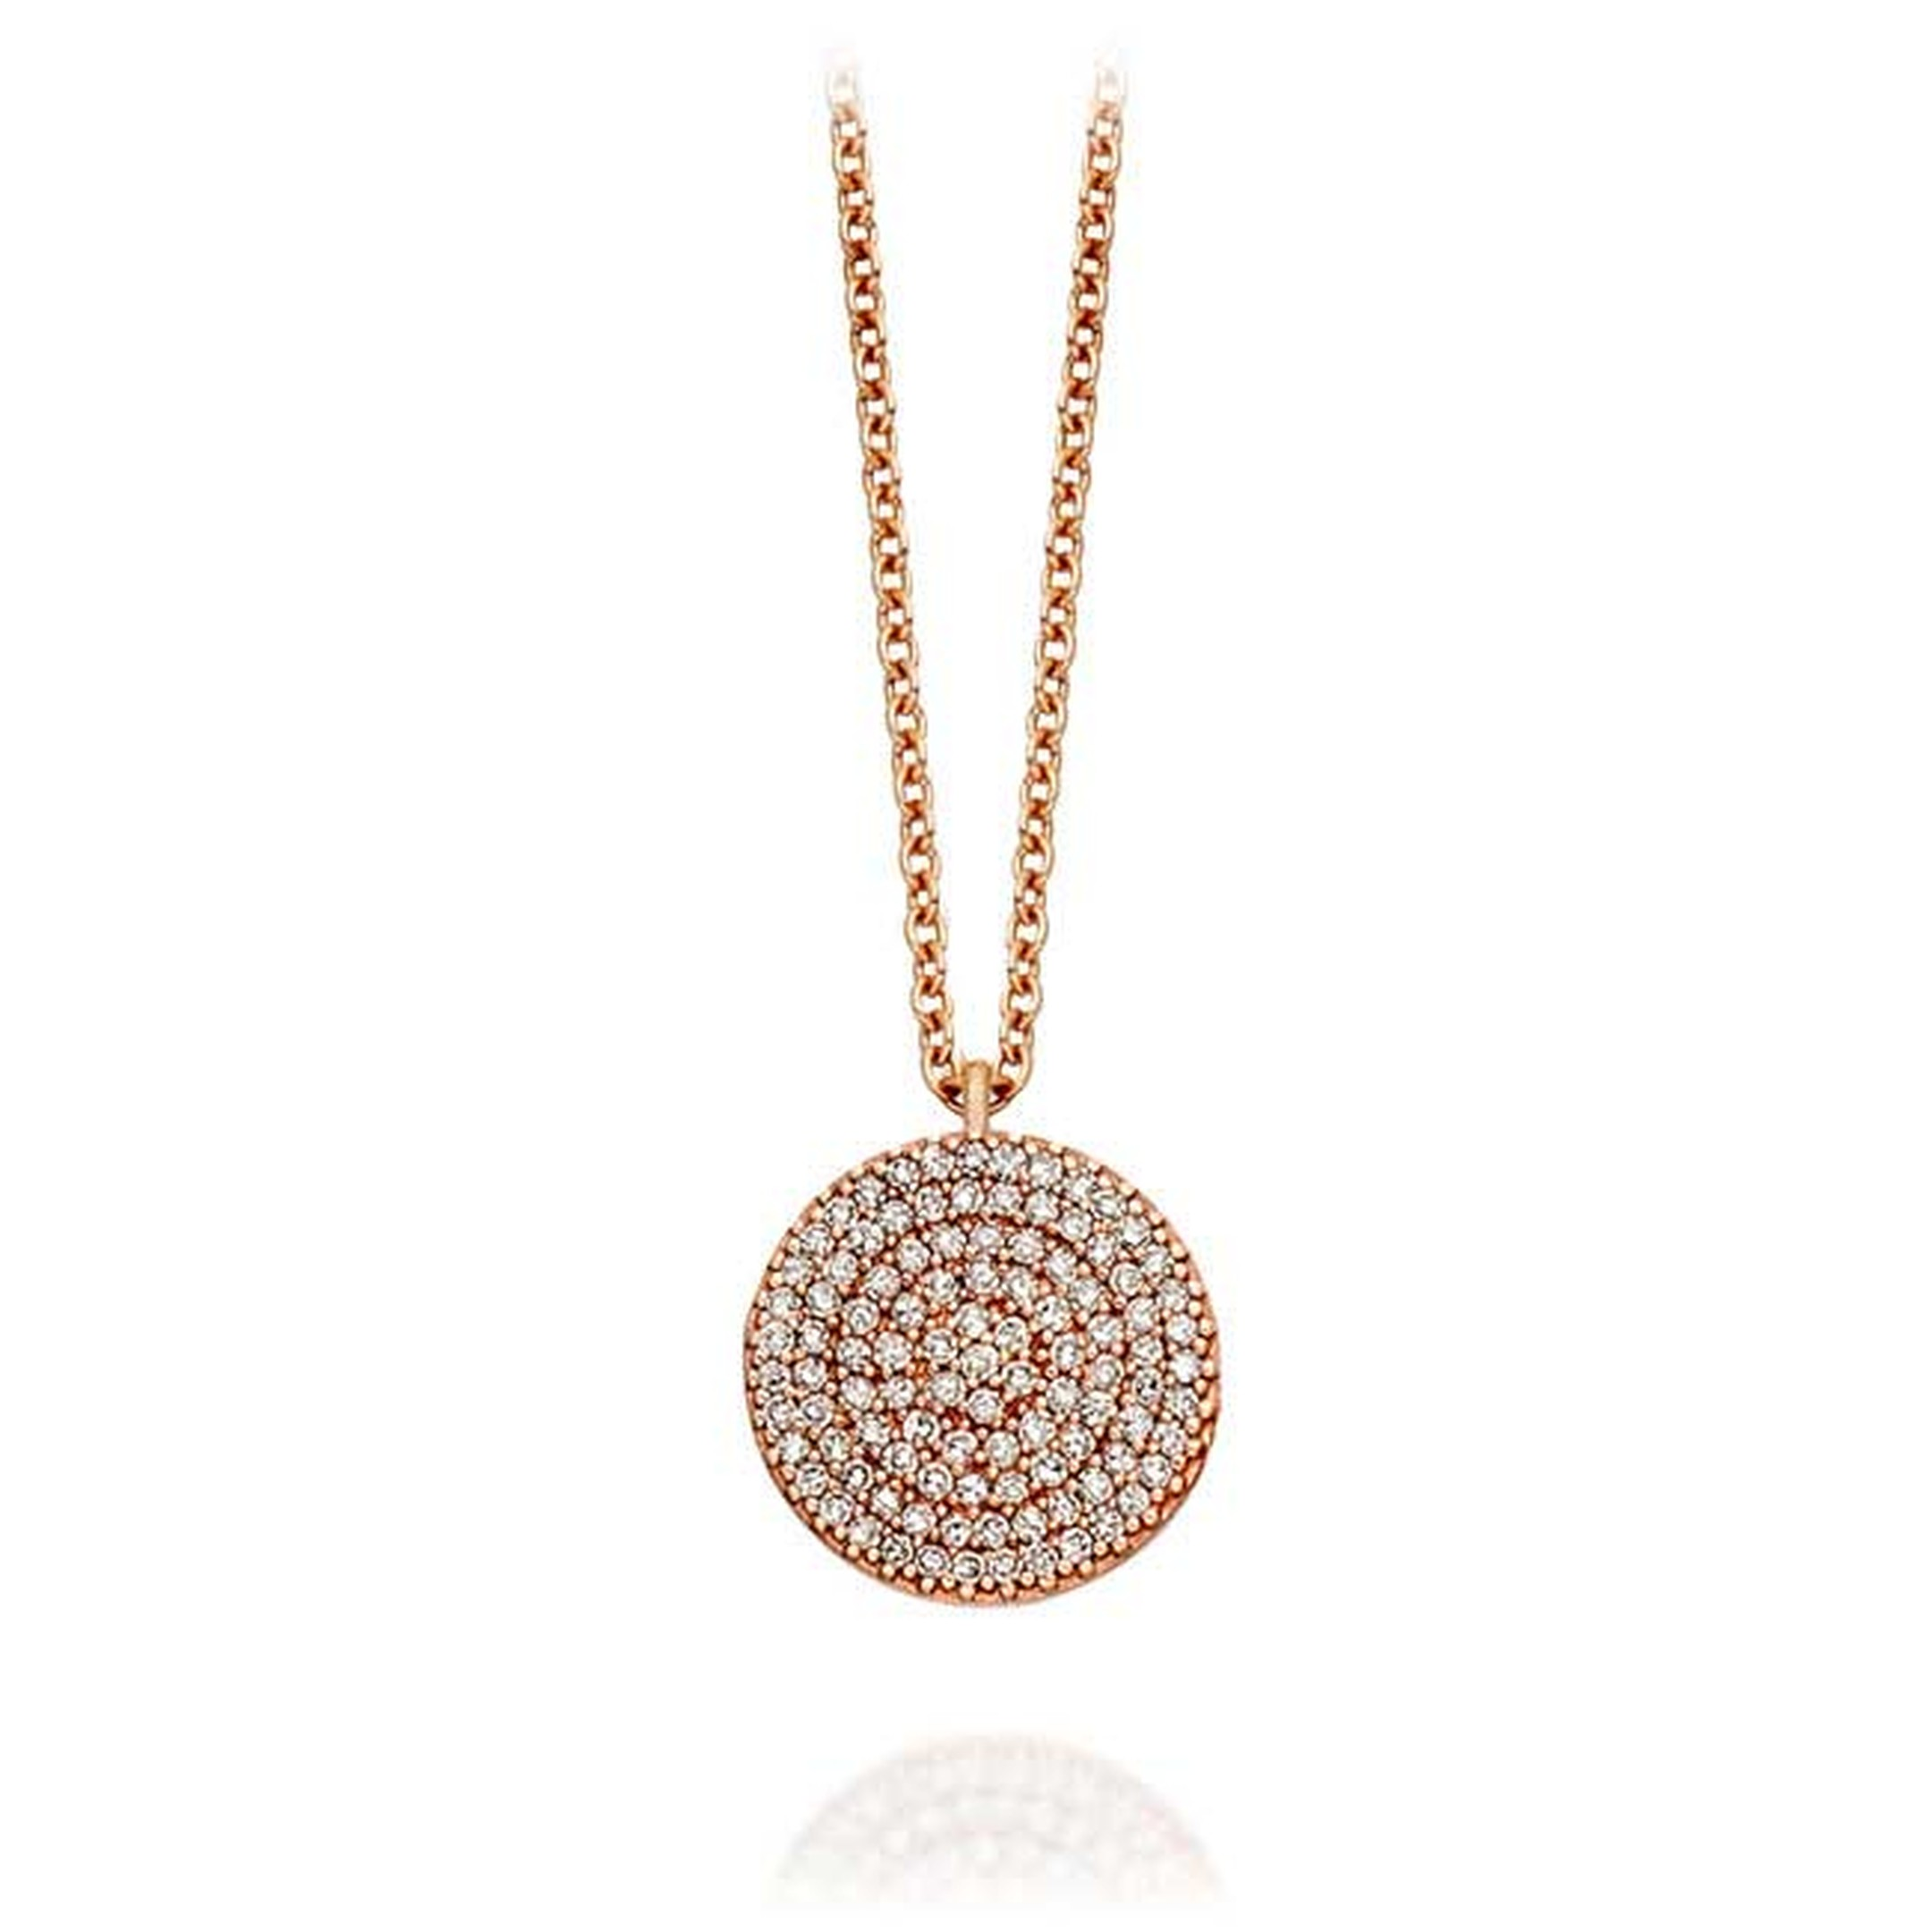 Astley Clarke Muse Icon diamond and rose gold necklace (£1,150).